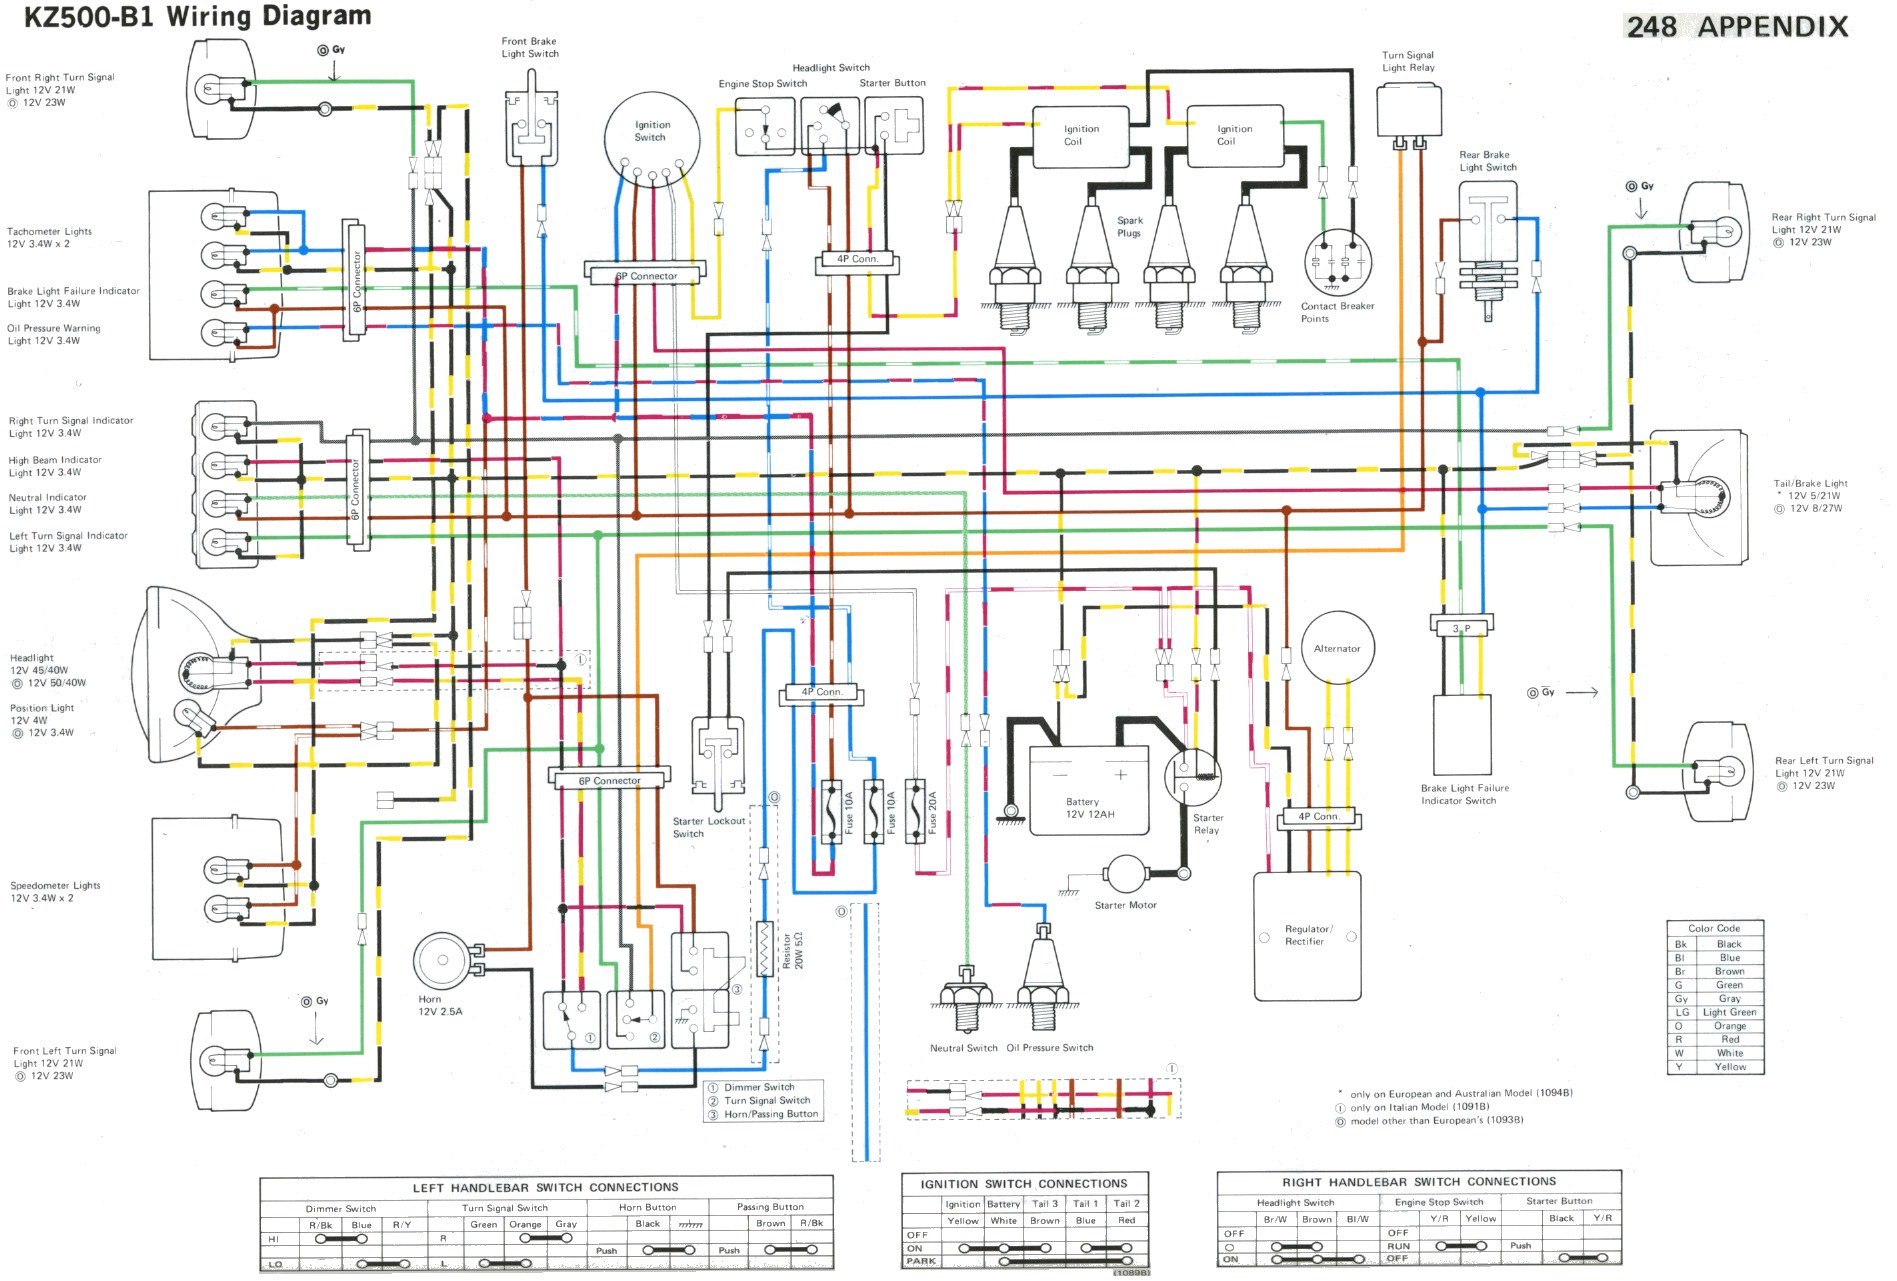 rb248kawKz500B1 kawasaki ltd 550 wiring diagram wiring diagram simonand 81 kz440 wiring diagram at bakdesigns.co